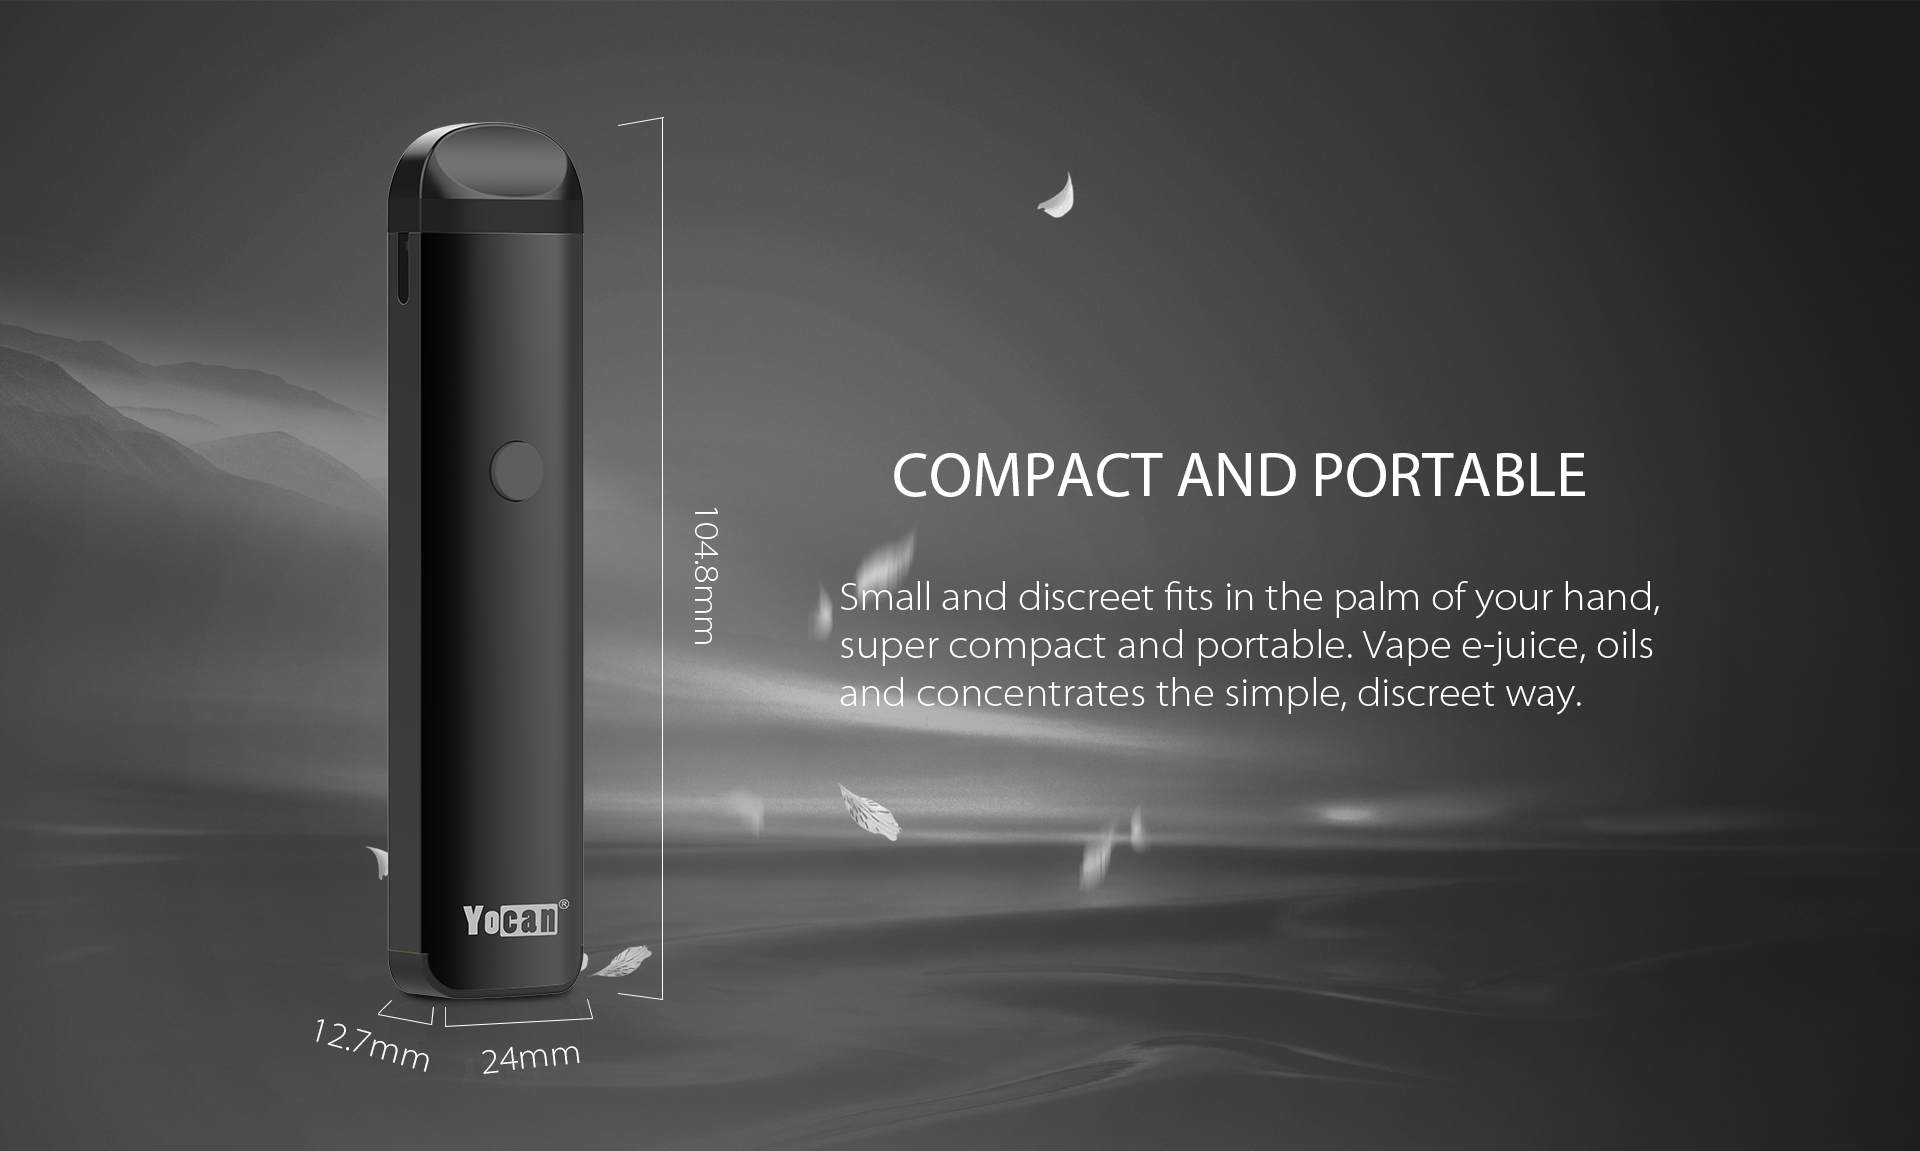 Yocan Evolve 2.0 is Compact and Portable.